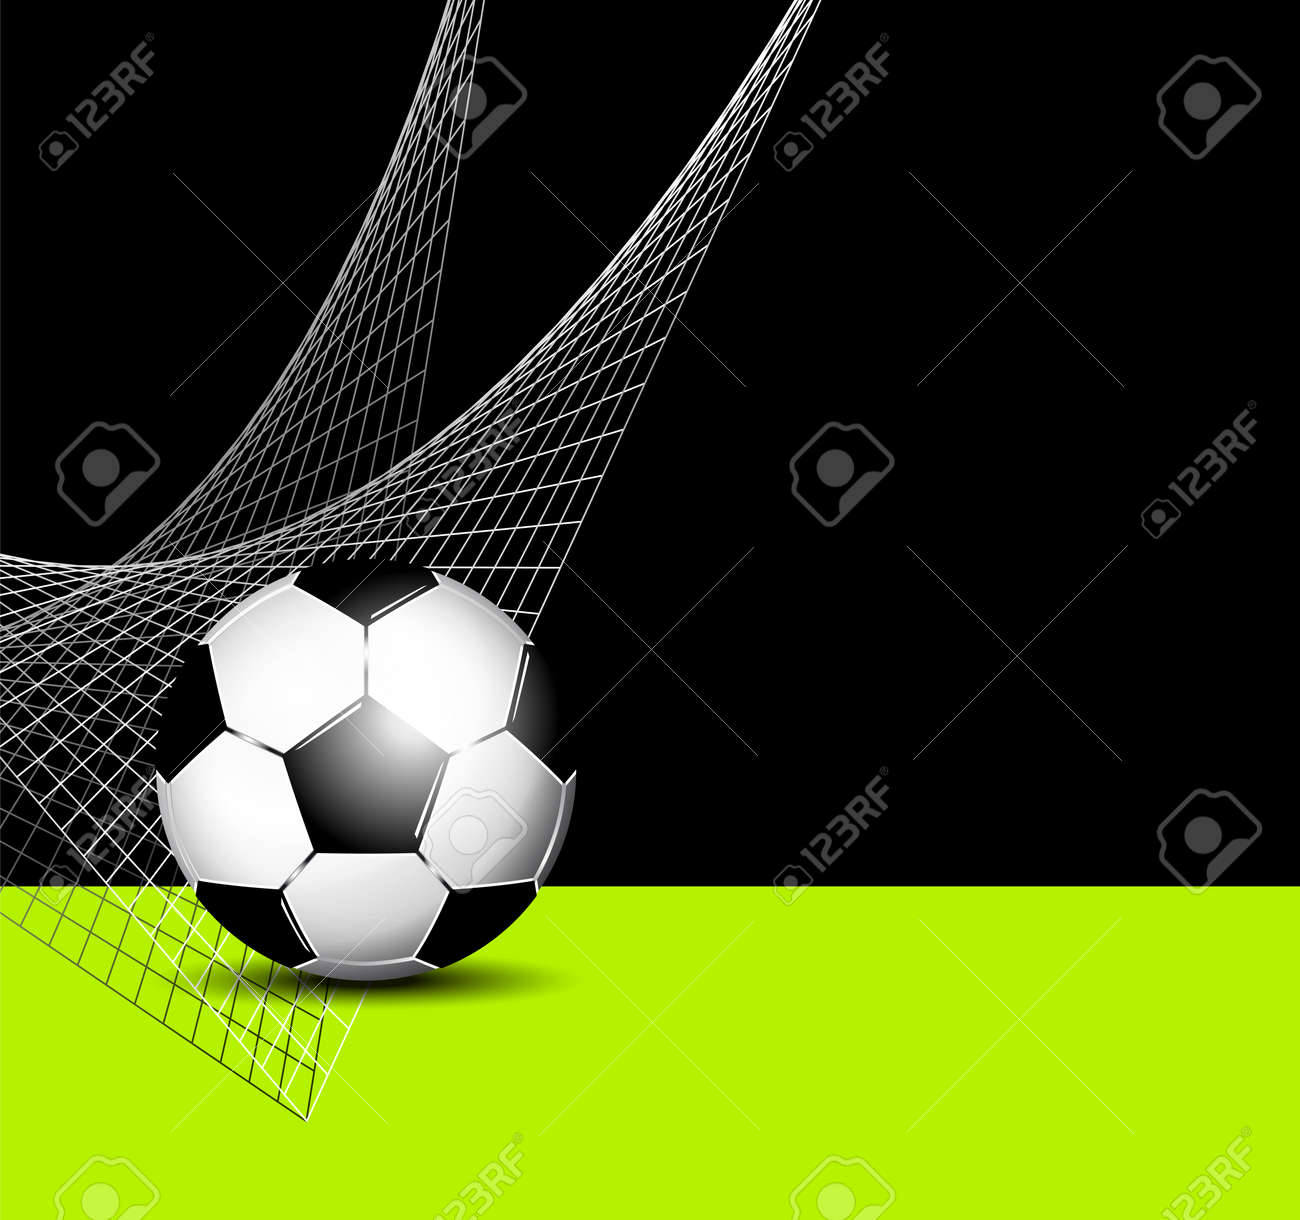 Soccer Ball With Net - Football Flyer Template Royalty Free Cliparts ...